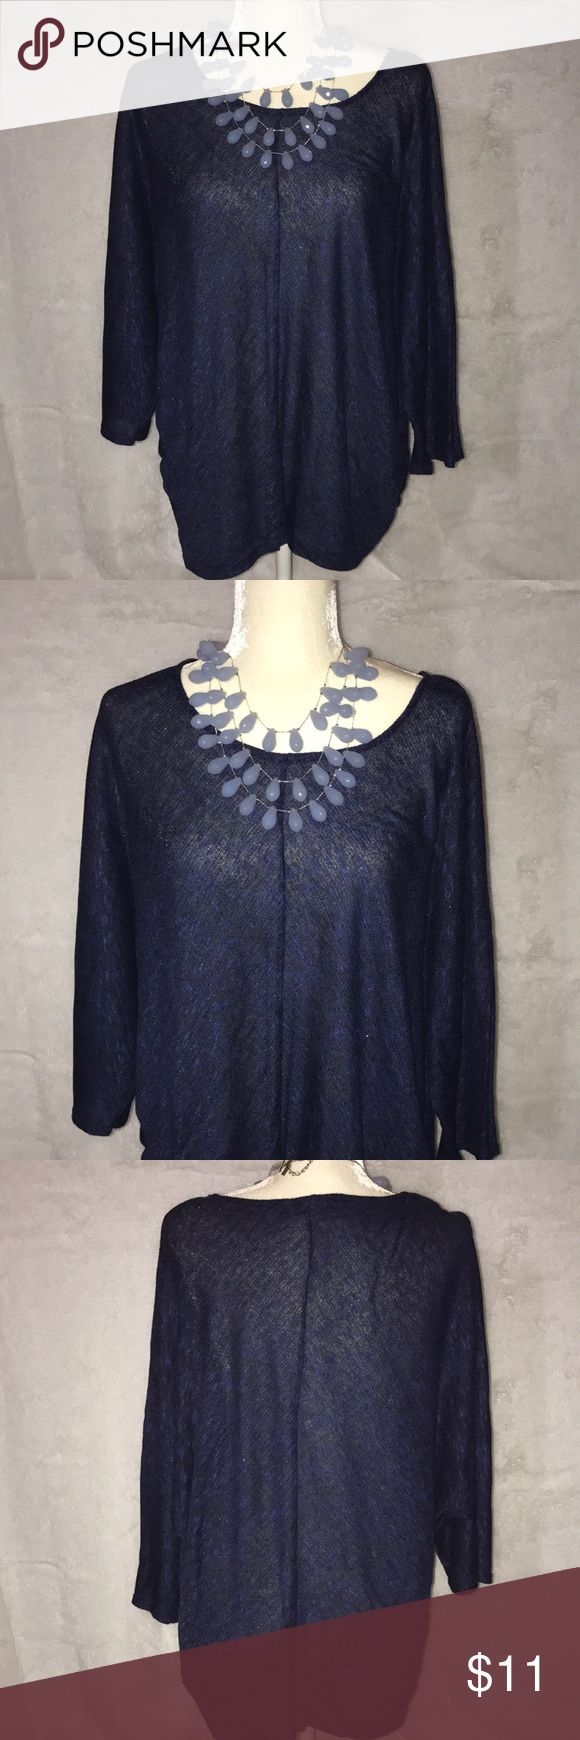 Women's Size 1X Navy Blue Top Beautiful Women's Light sweater top Perfect for Casual Day Wear and even dress it up for evening wear!  Apt. 9 Size 1X Apt. 9 Tops